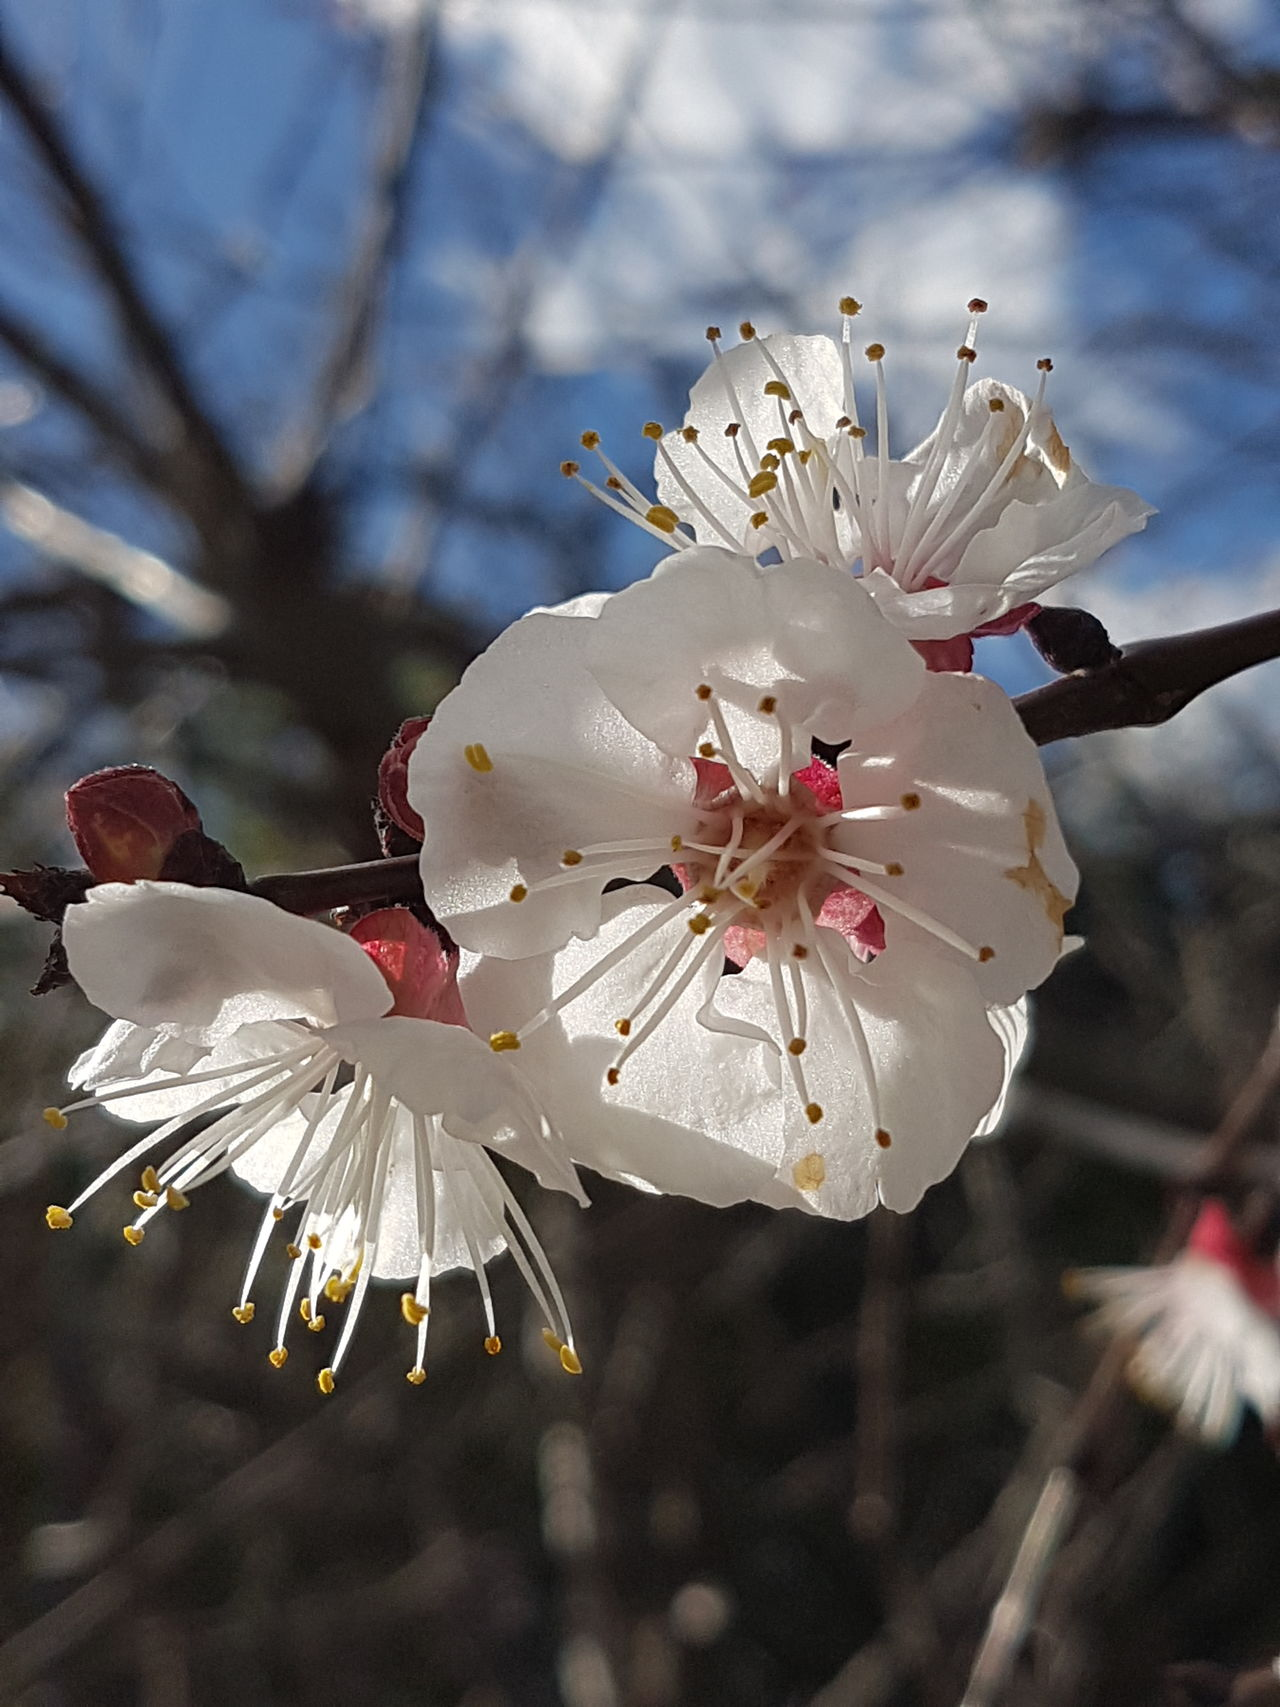 Apricot Blossoms Blossom Close-up Sunlight Freshness Springtime Spring Flower Head Outdoors Tree Fragility Beauty In Nature No Edit/no Filter